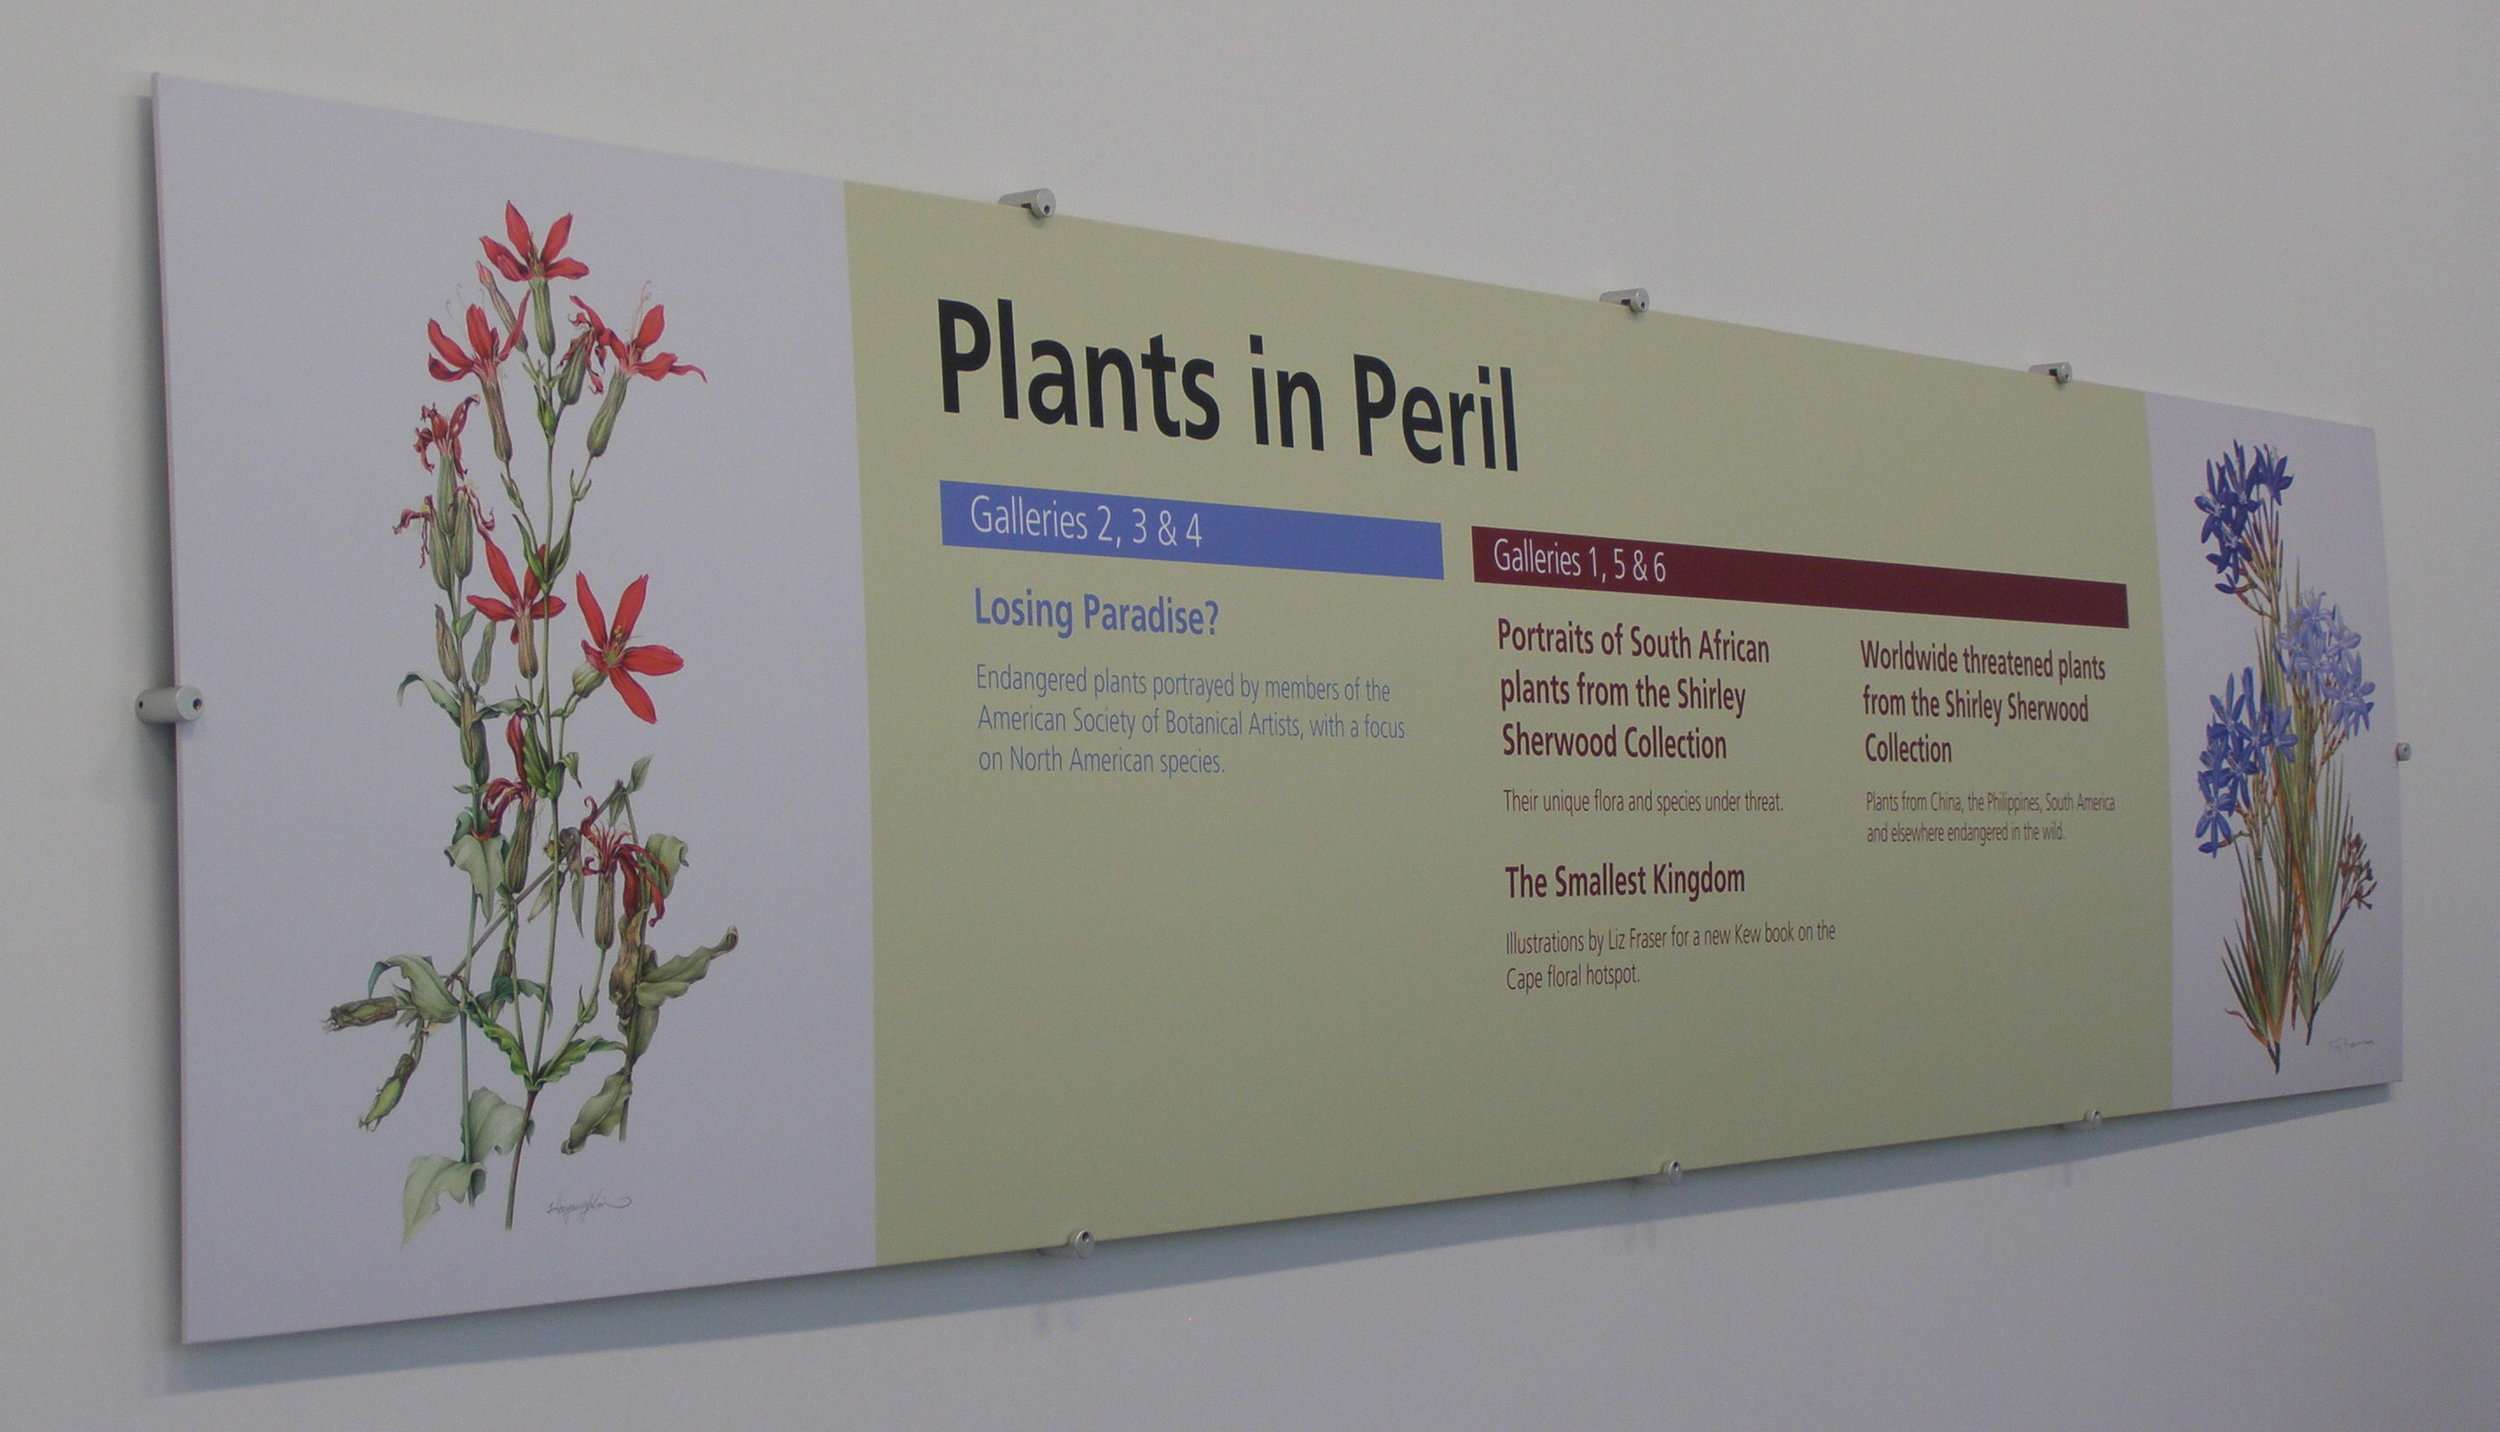 Royal Catchfly in KEW, London - This endangered prairie plant got some heat with 'Losing Paradise